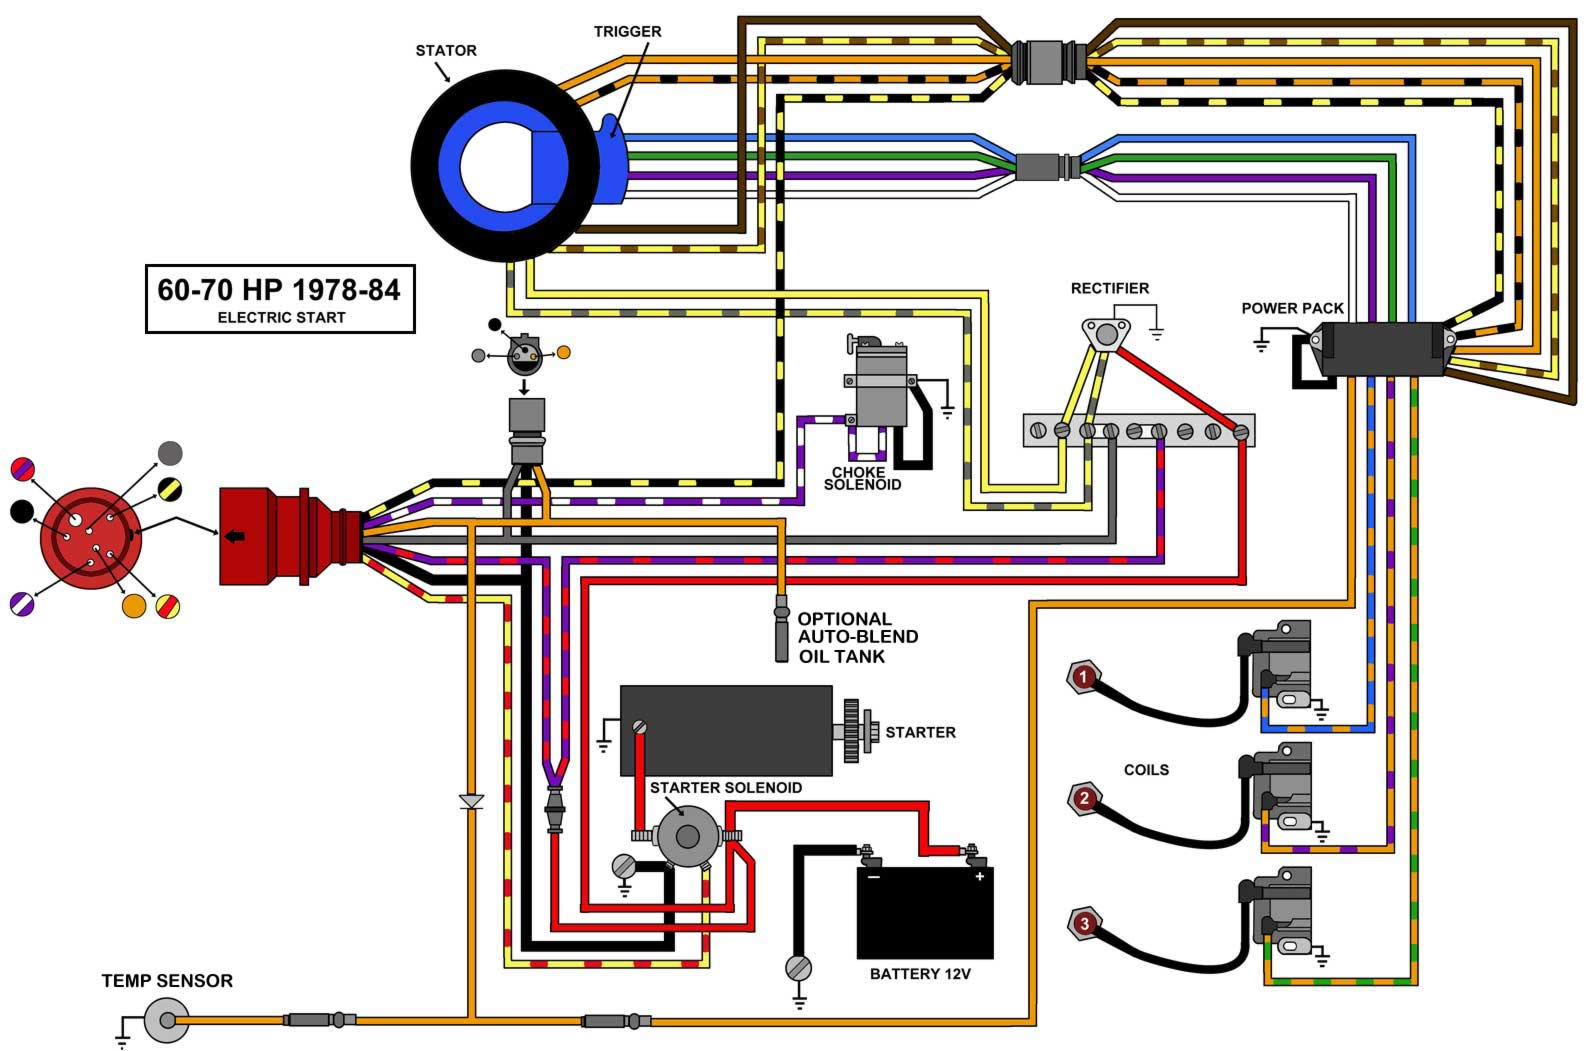 mastertech marine evinrude johnson outboard wiring diagrams Chrysler 55 HP Outboard Wiring Diagram  HP Mercury Outboard Wiring Diagram 70 HP Mariner Outboard Wiring Diagram 70 HP Johnson Outboard Wiring Diagram